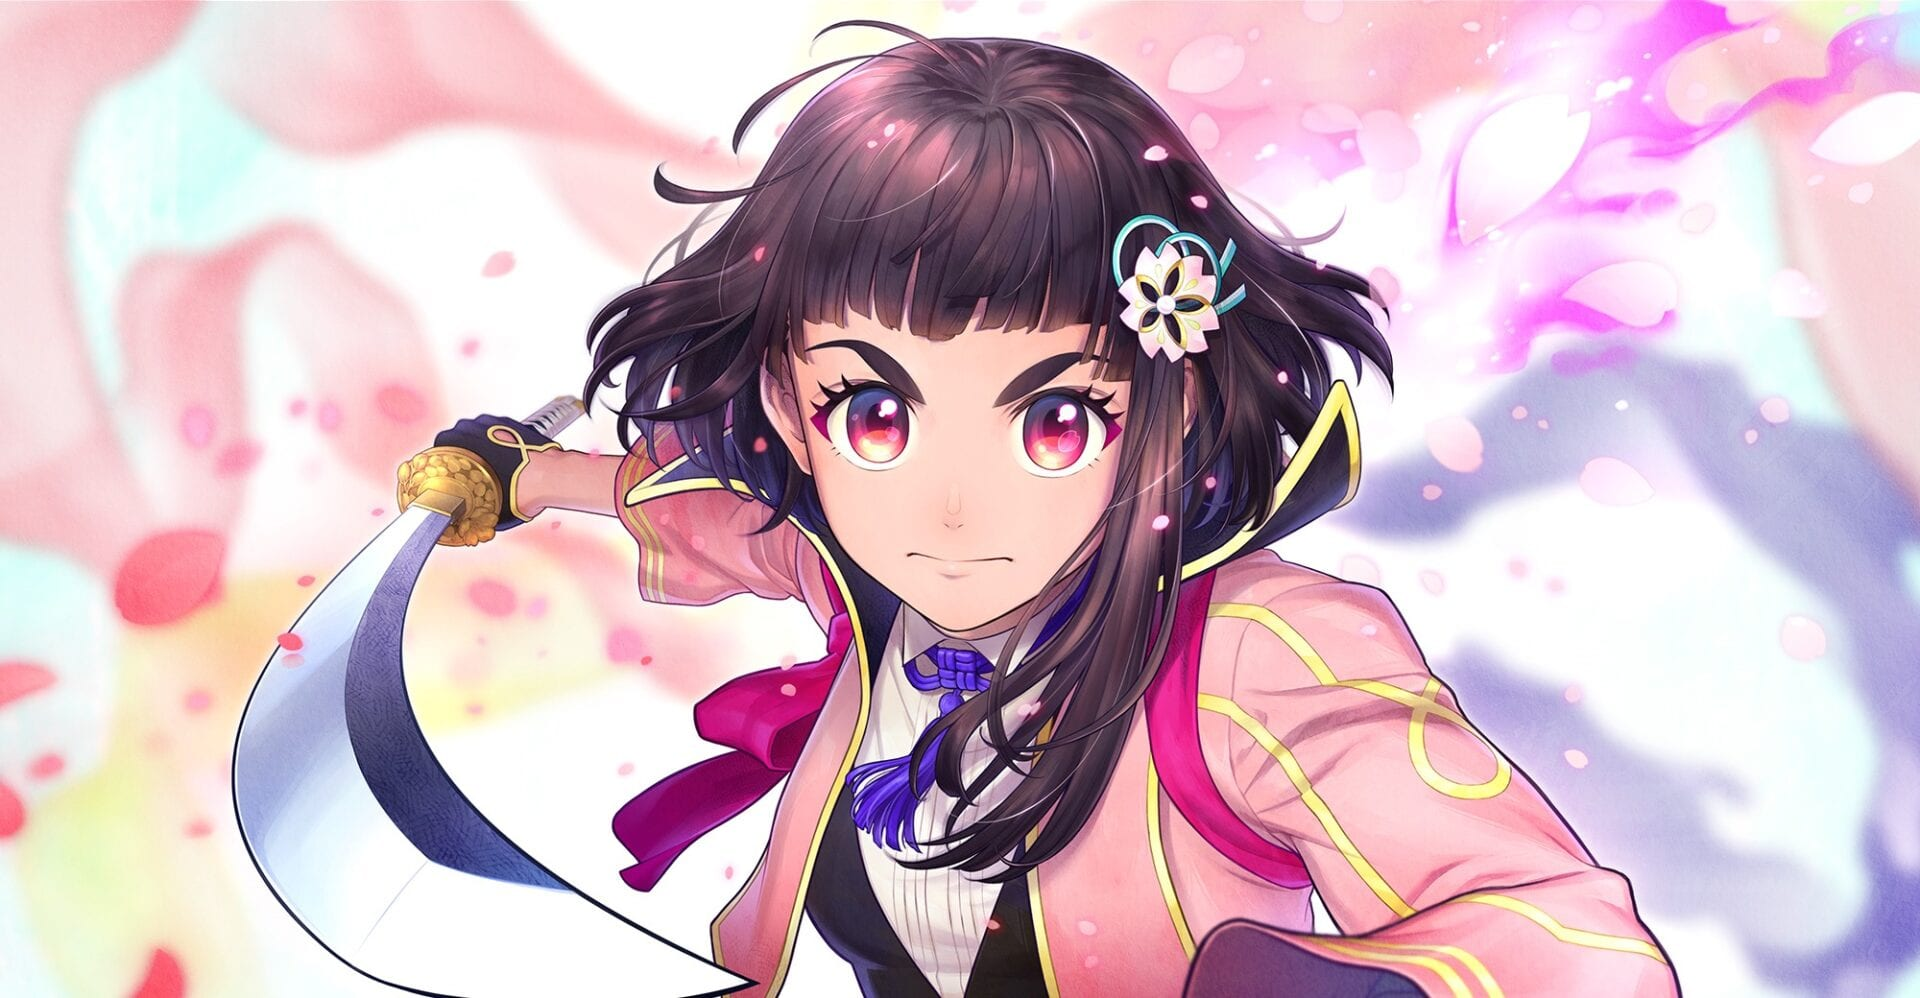 New Sakura Wars Game Sakura Revolution Gets Release Date and Gameplay Trailer